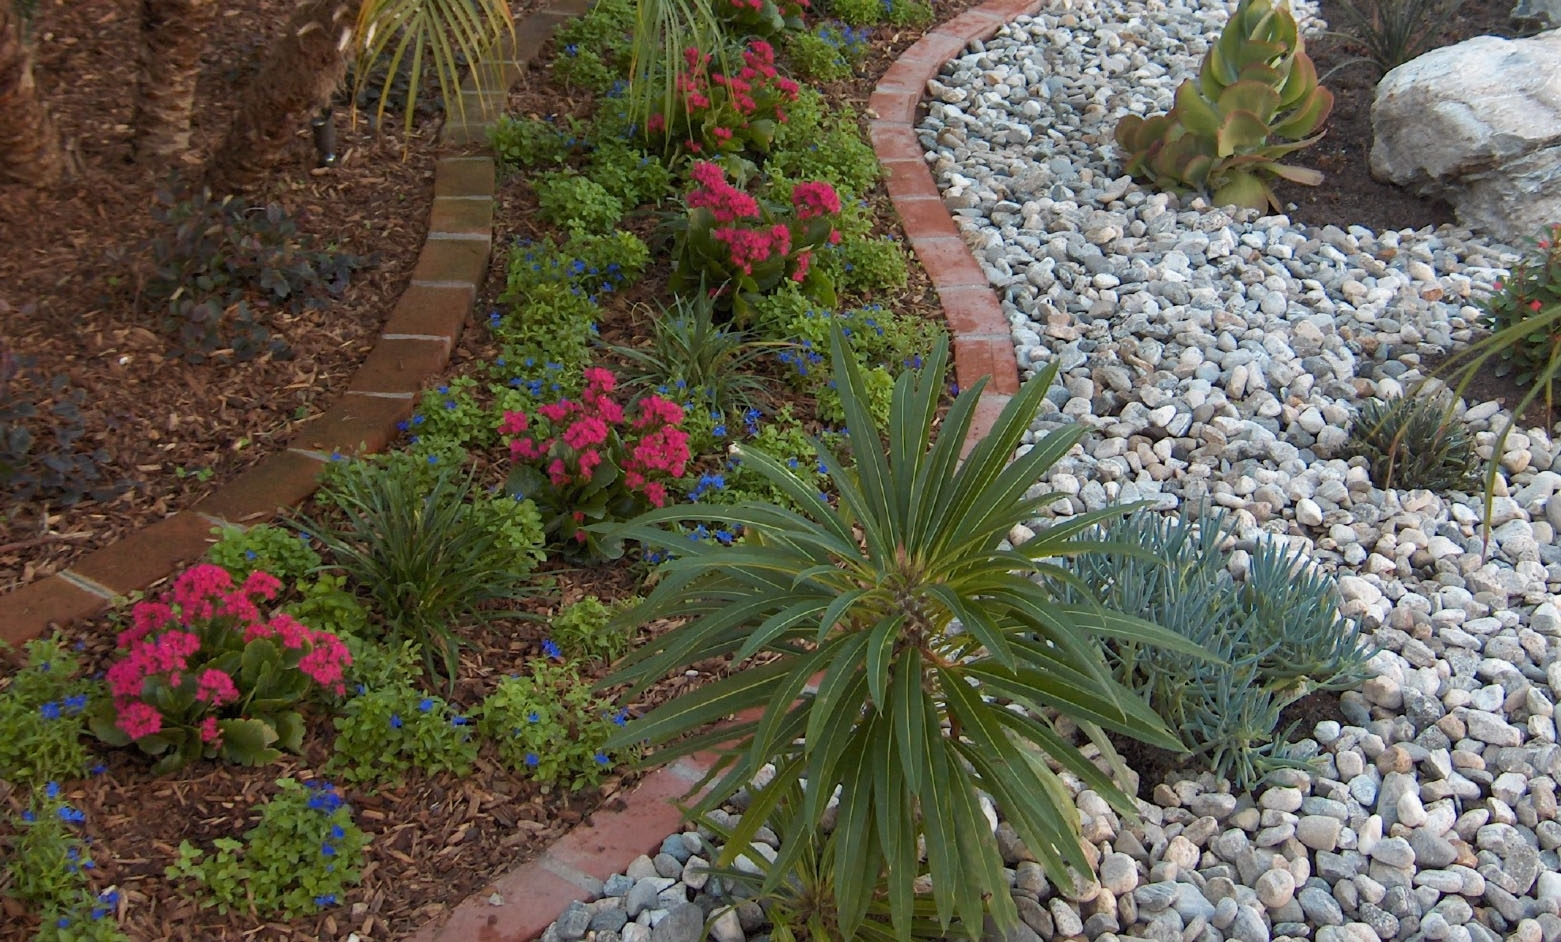 Bark Mulch Vs Rock Mulch Which Is Better Gt Landscapes Pertaining To Decorative Landscape Gravel Different Types Decorative Landscape Gravel